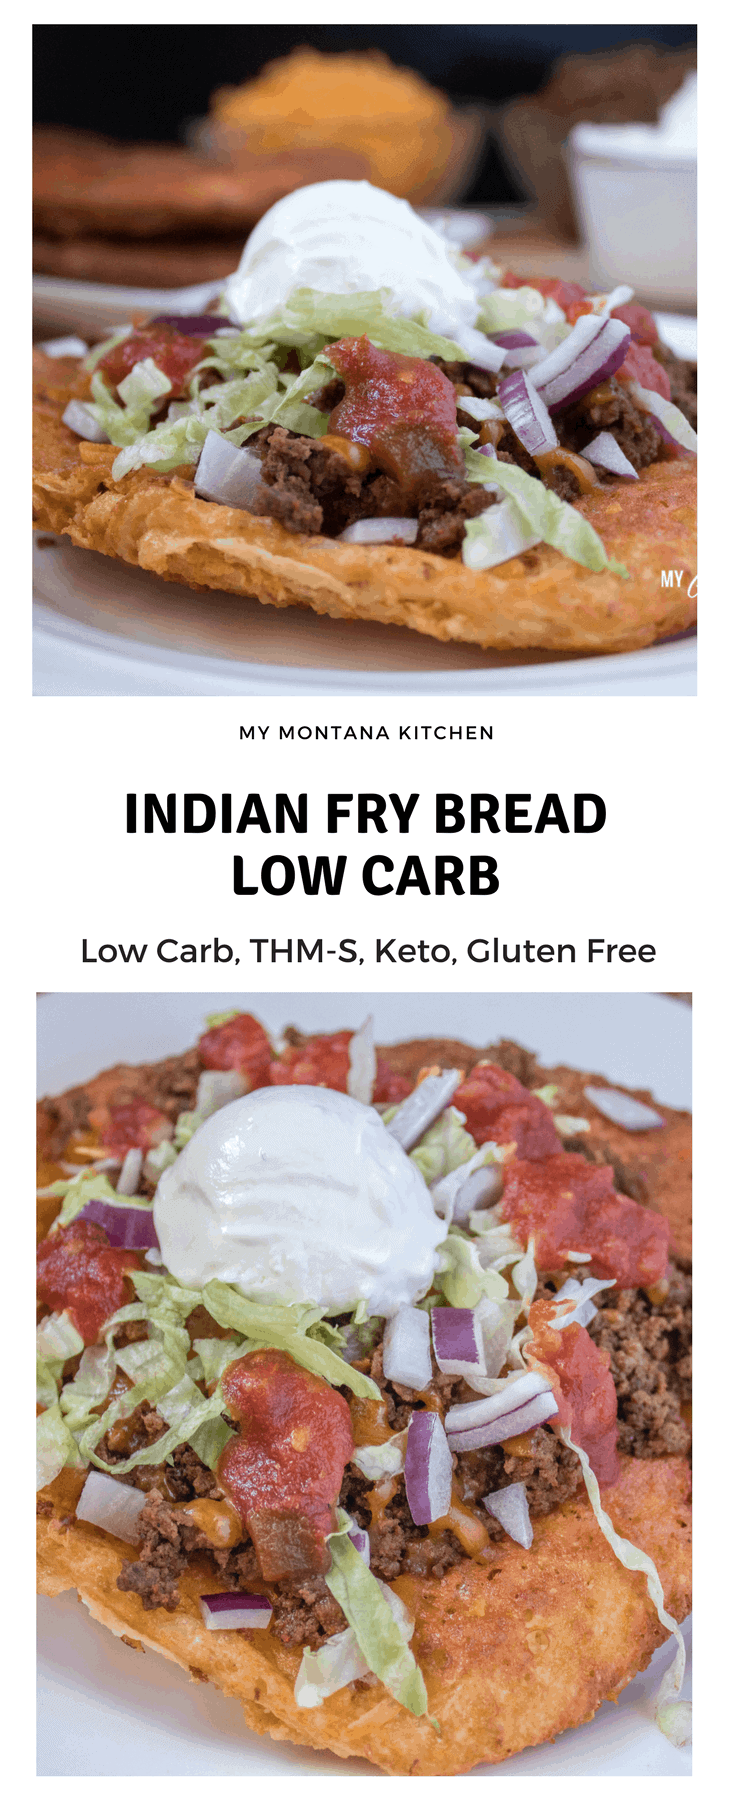 Indian Fry Bread (Low Carb) #trimhealthymama #thm #thms #keto #navajofrybread #indianfrybread #frybread #glutenfree